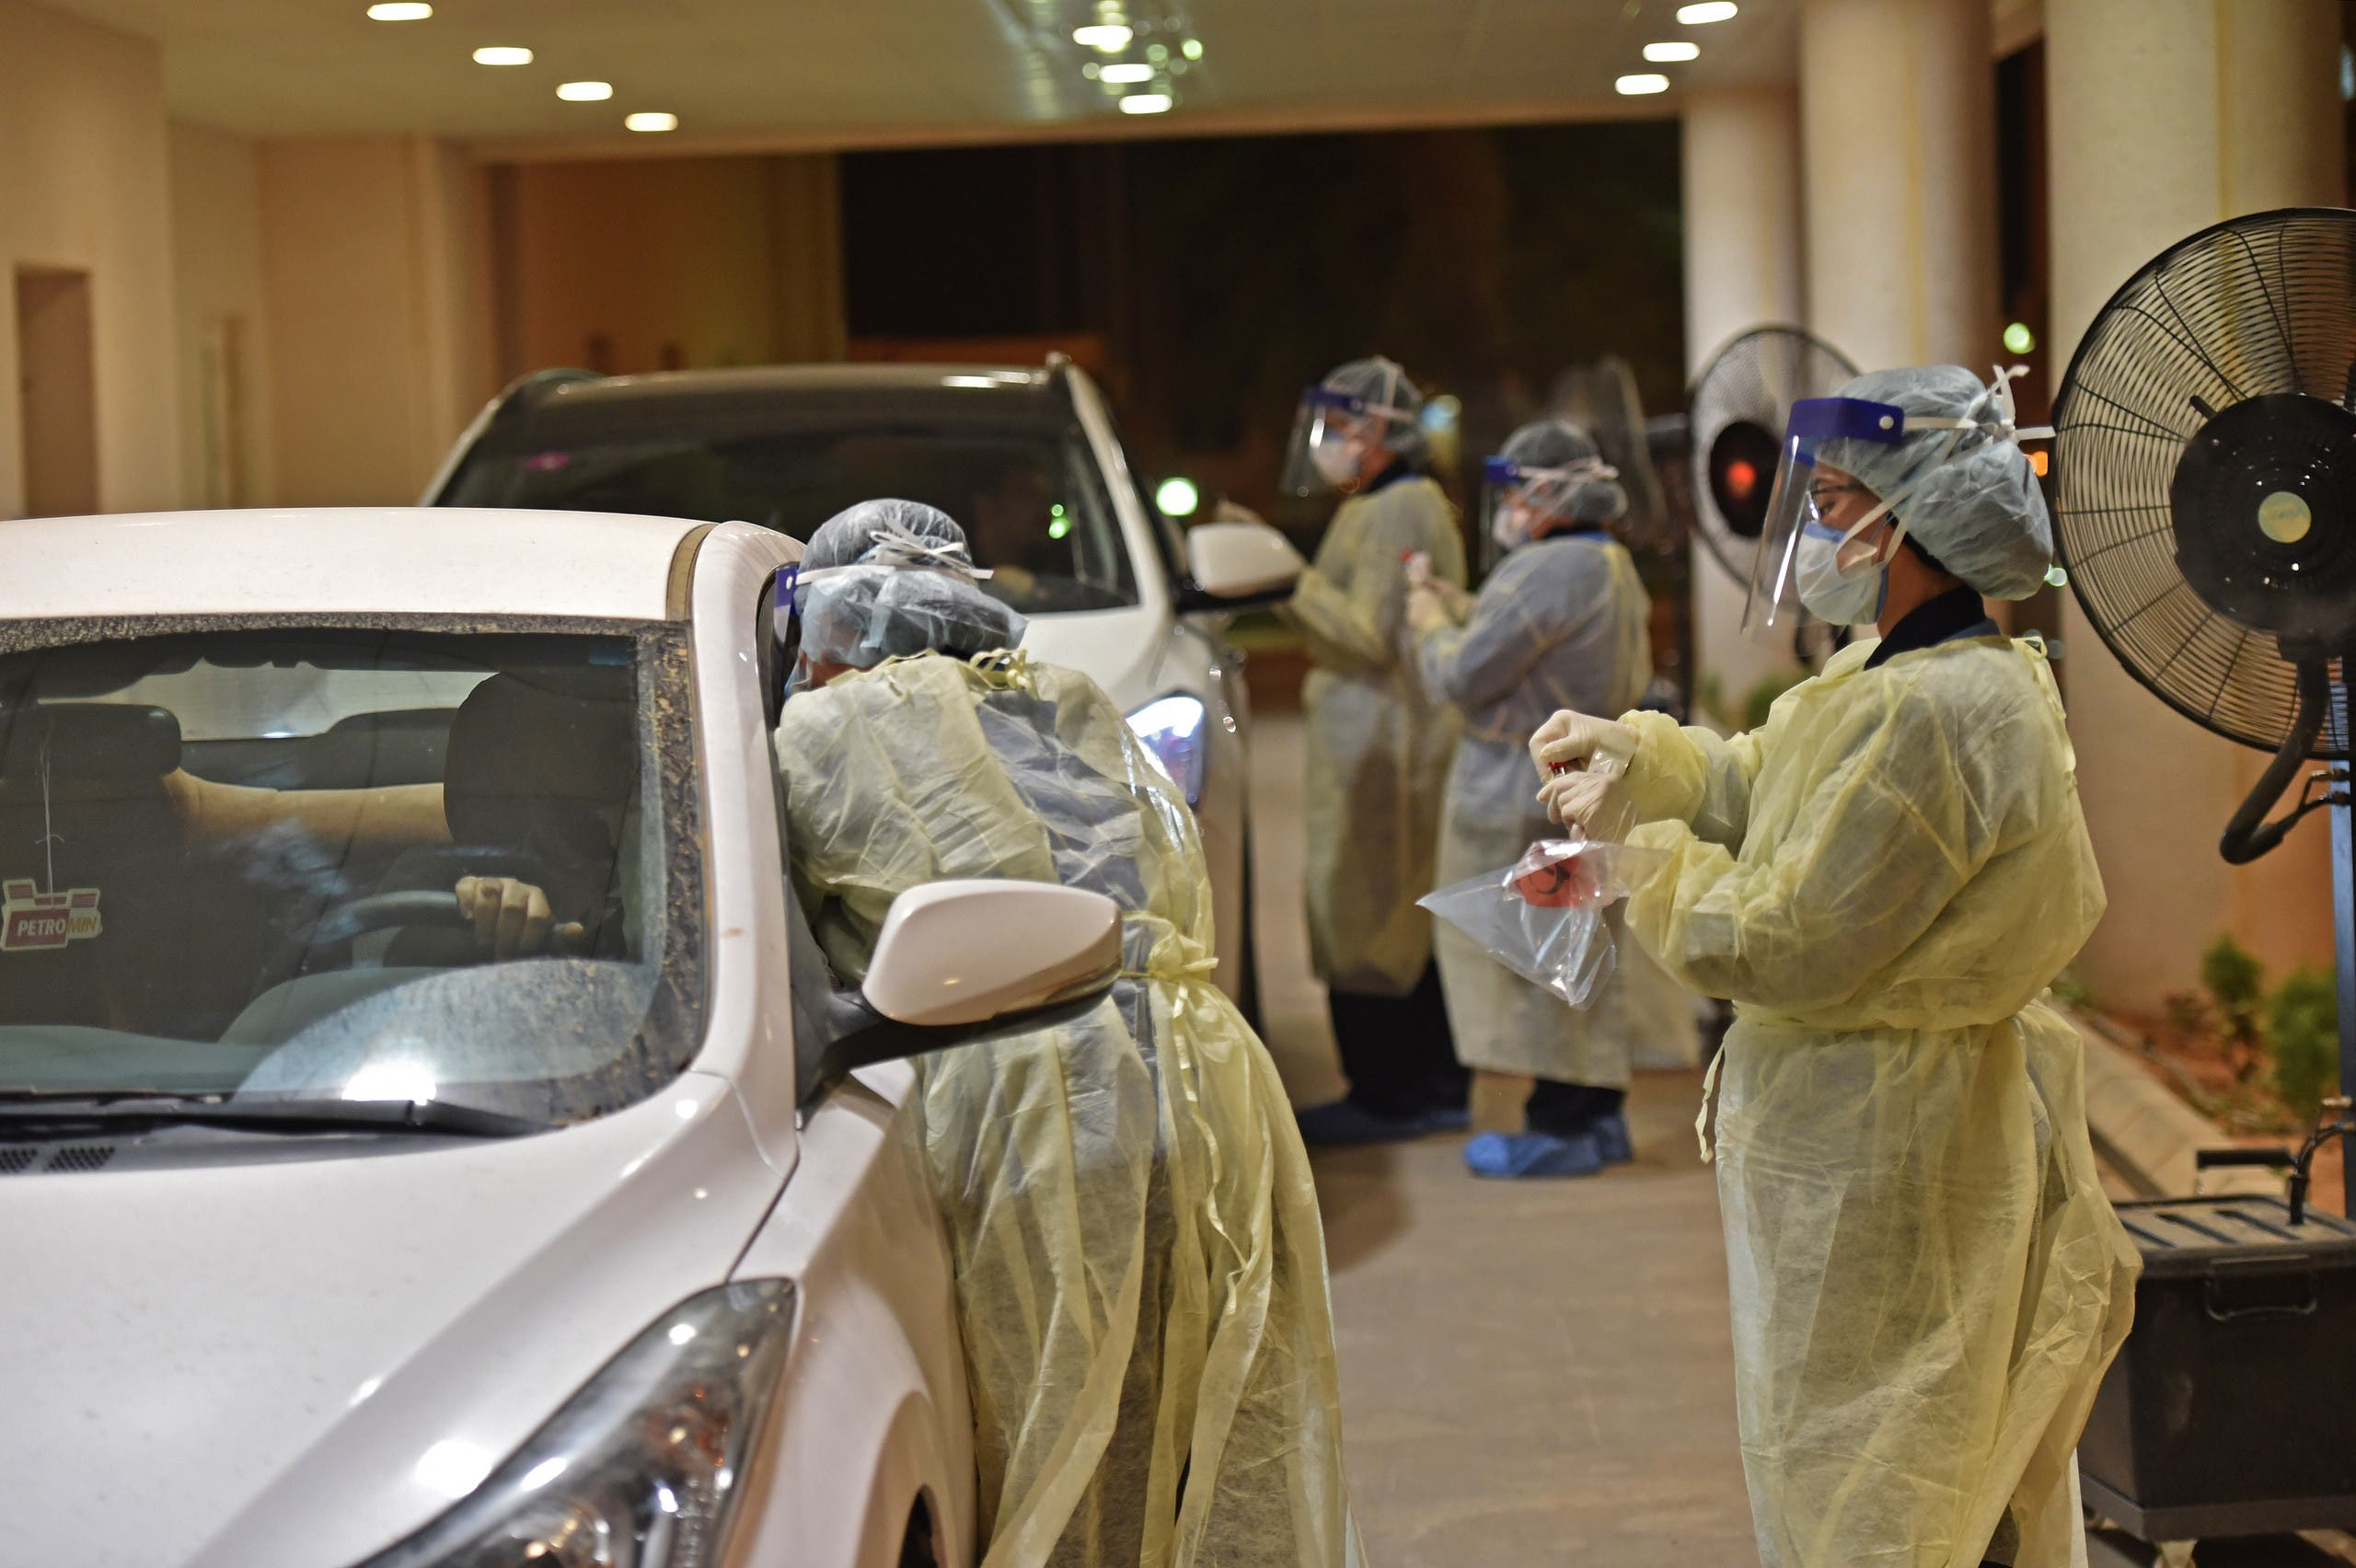 Health workers perform a nose swab test during a drive through coronavirus test campaign held in Diriyah hospital in the Saudi capital Riyadh on May 7, 2020 amid the COVID-19 pandemic. (File photo)